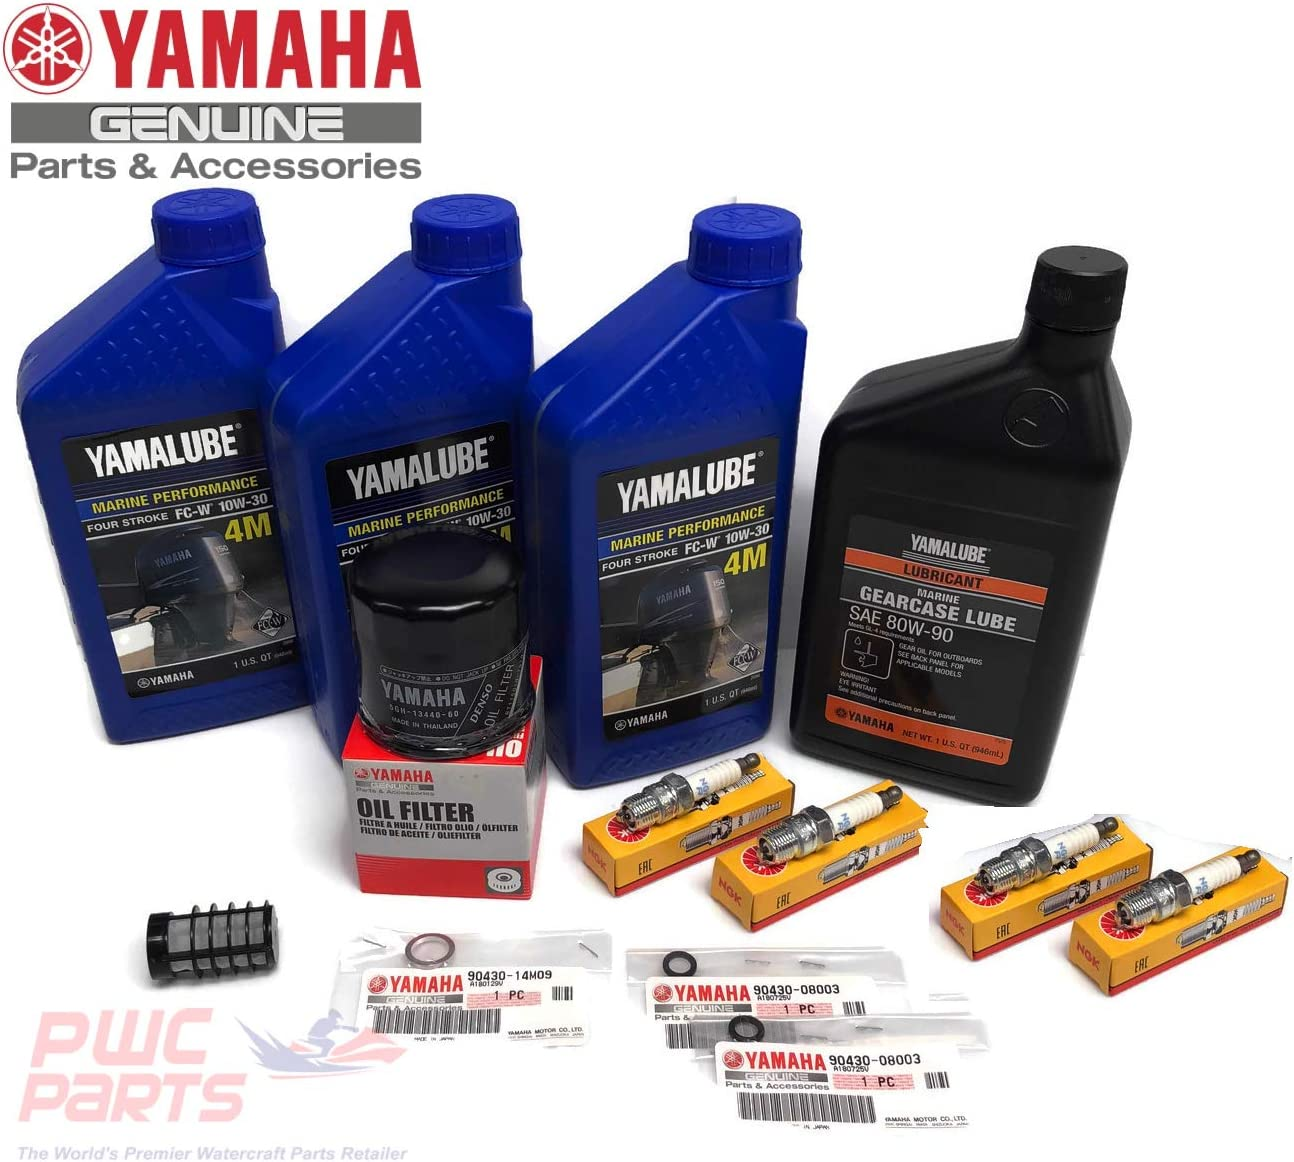 YAMAHA OEM 1995-2004 F50 T50 Oil Change 10W30 FC 4M Lower Unit Gear Lube Drain Fill Gasket Spark Plugs NGK DPR6EA-9 Primary Fuel Filter Maintenance Kit